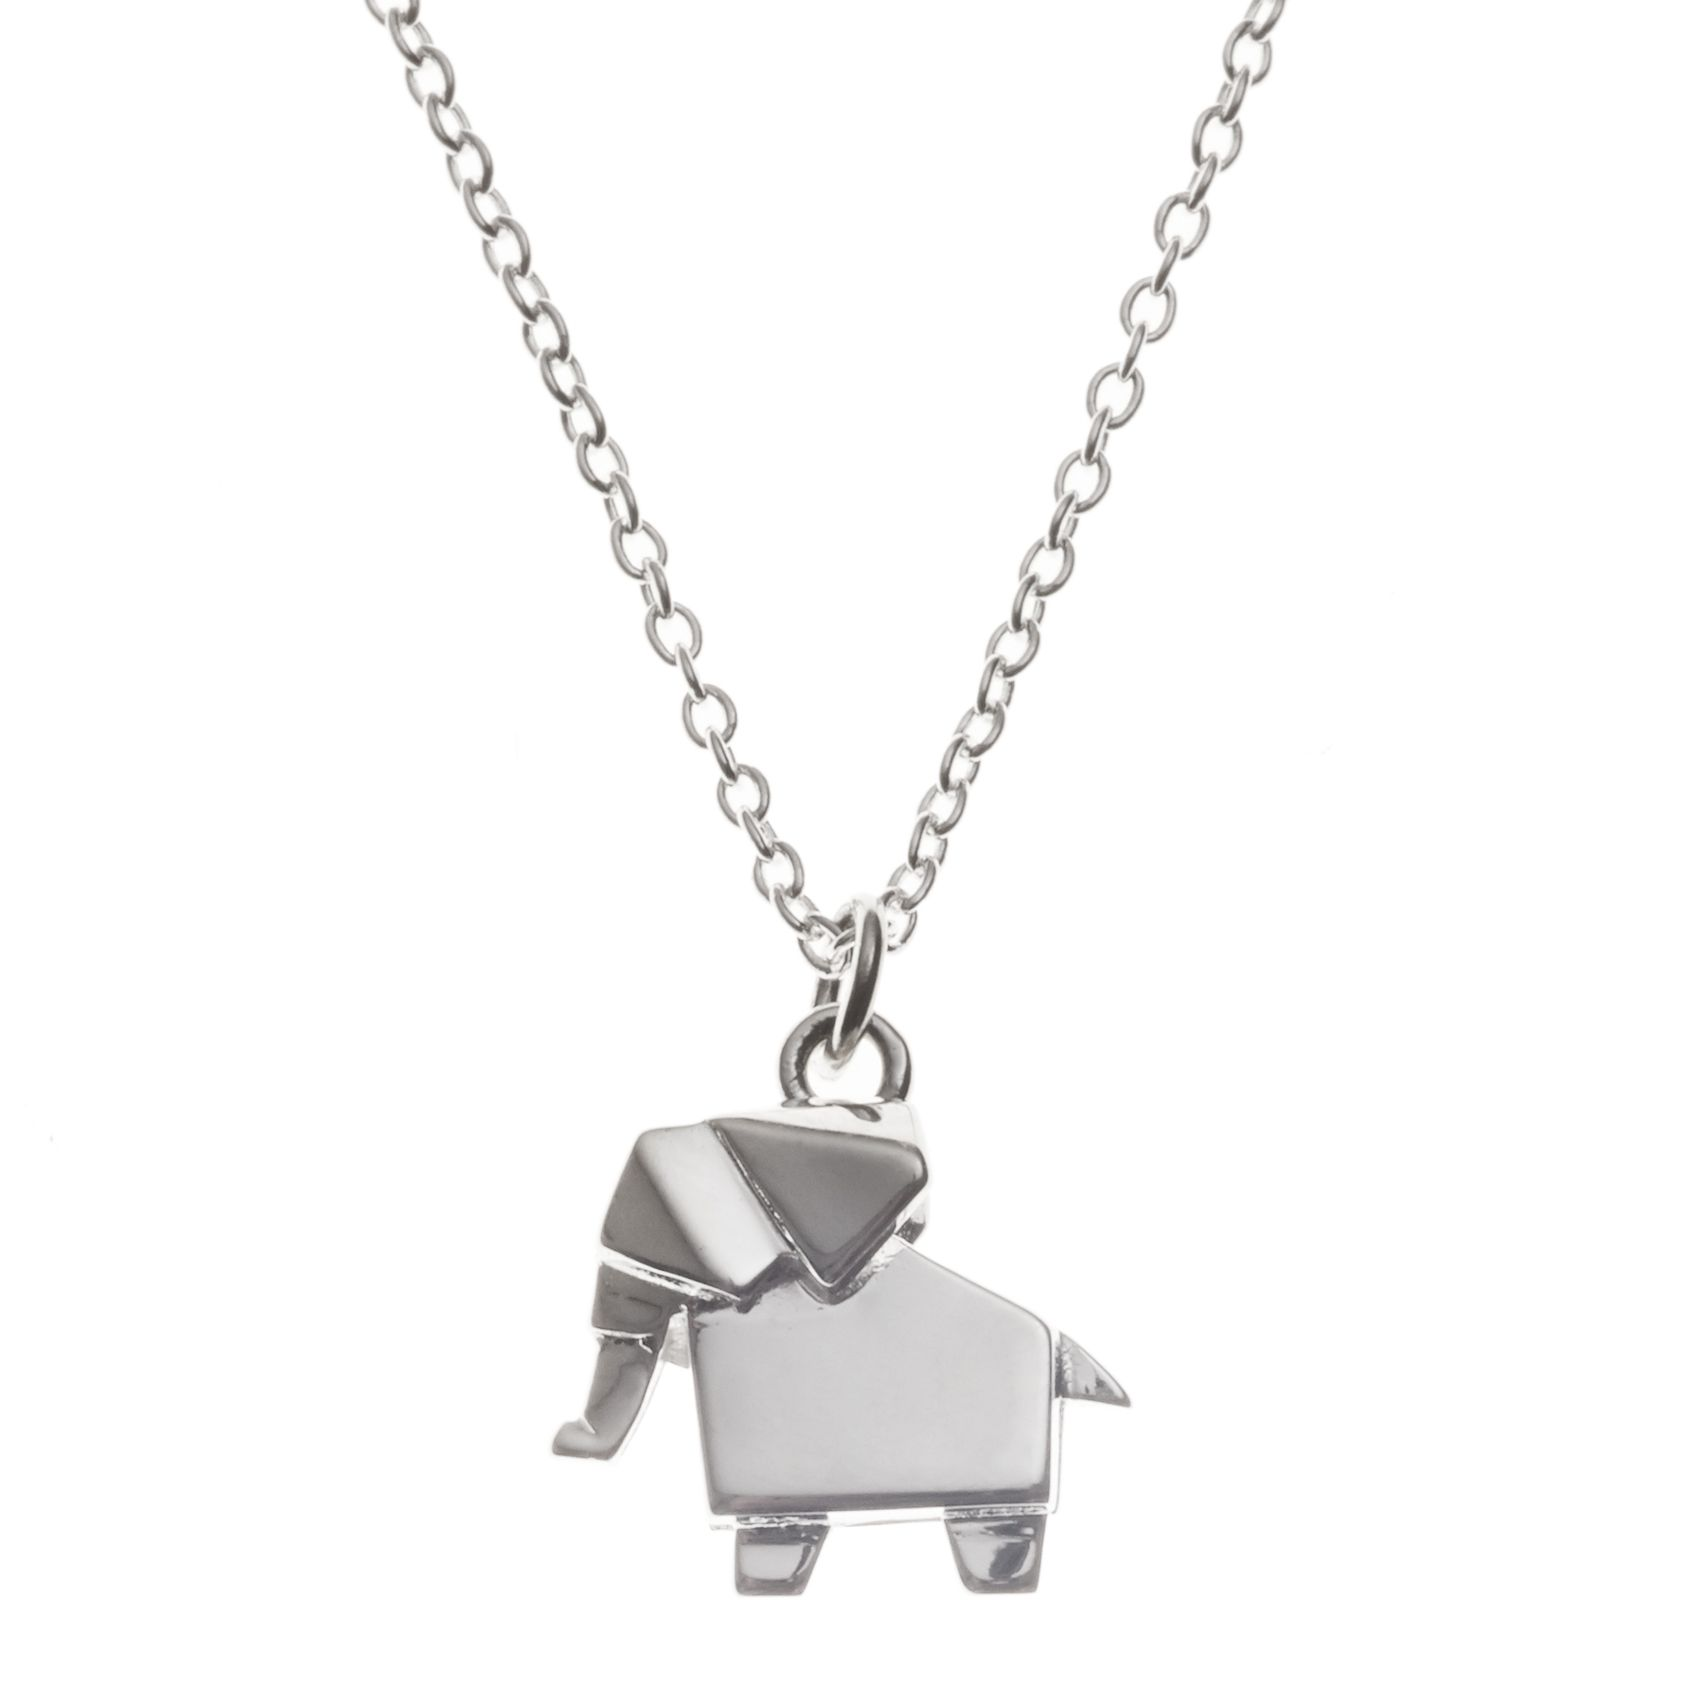 Buy the Silver Origami Elephant Necklace at Oliver Bonas. Enjoy free worldwide standard delivery for orders over £50.